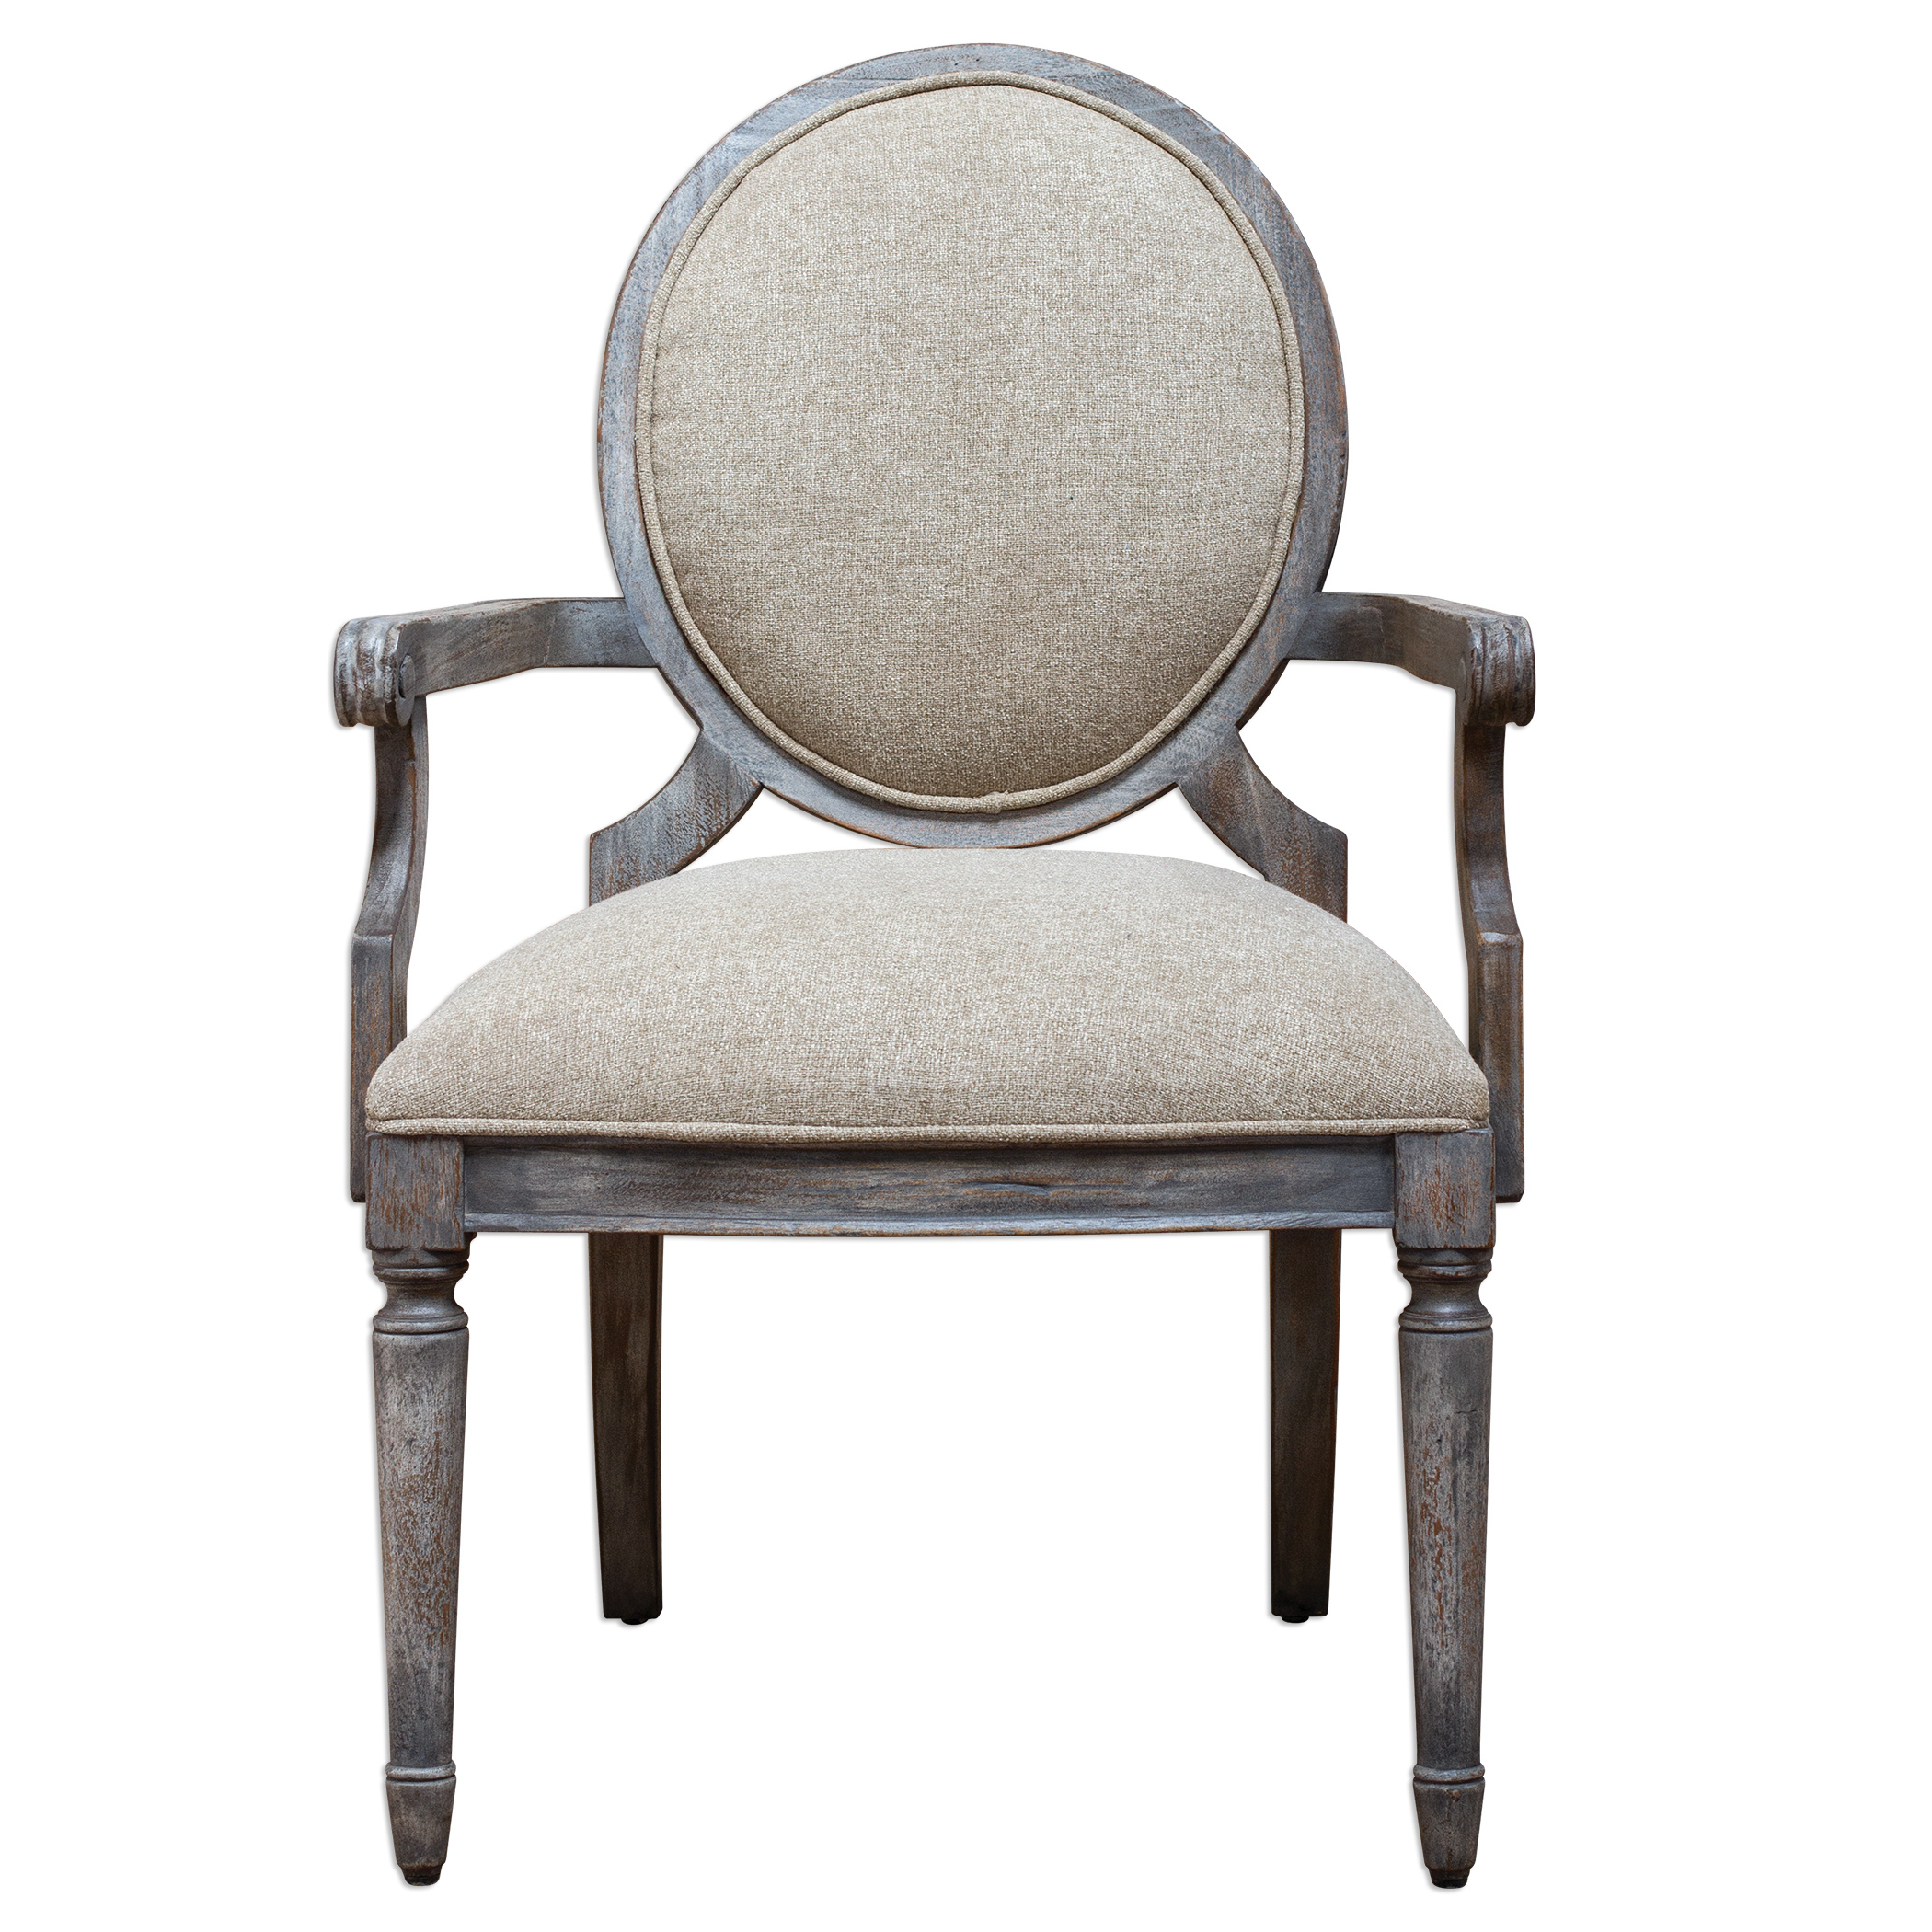 Uttermost Accent Furniture Kamila Driftwood Armchair - Item Number: 23647